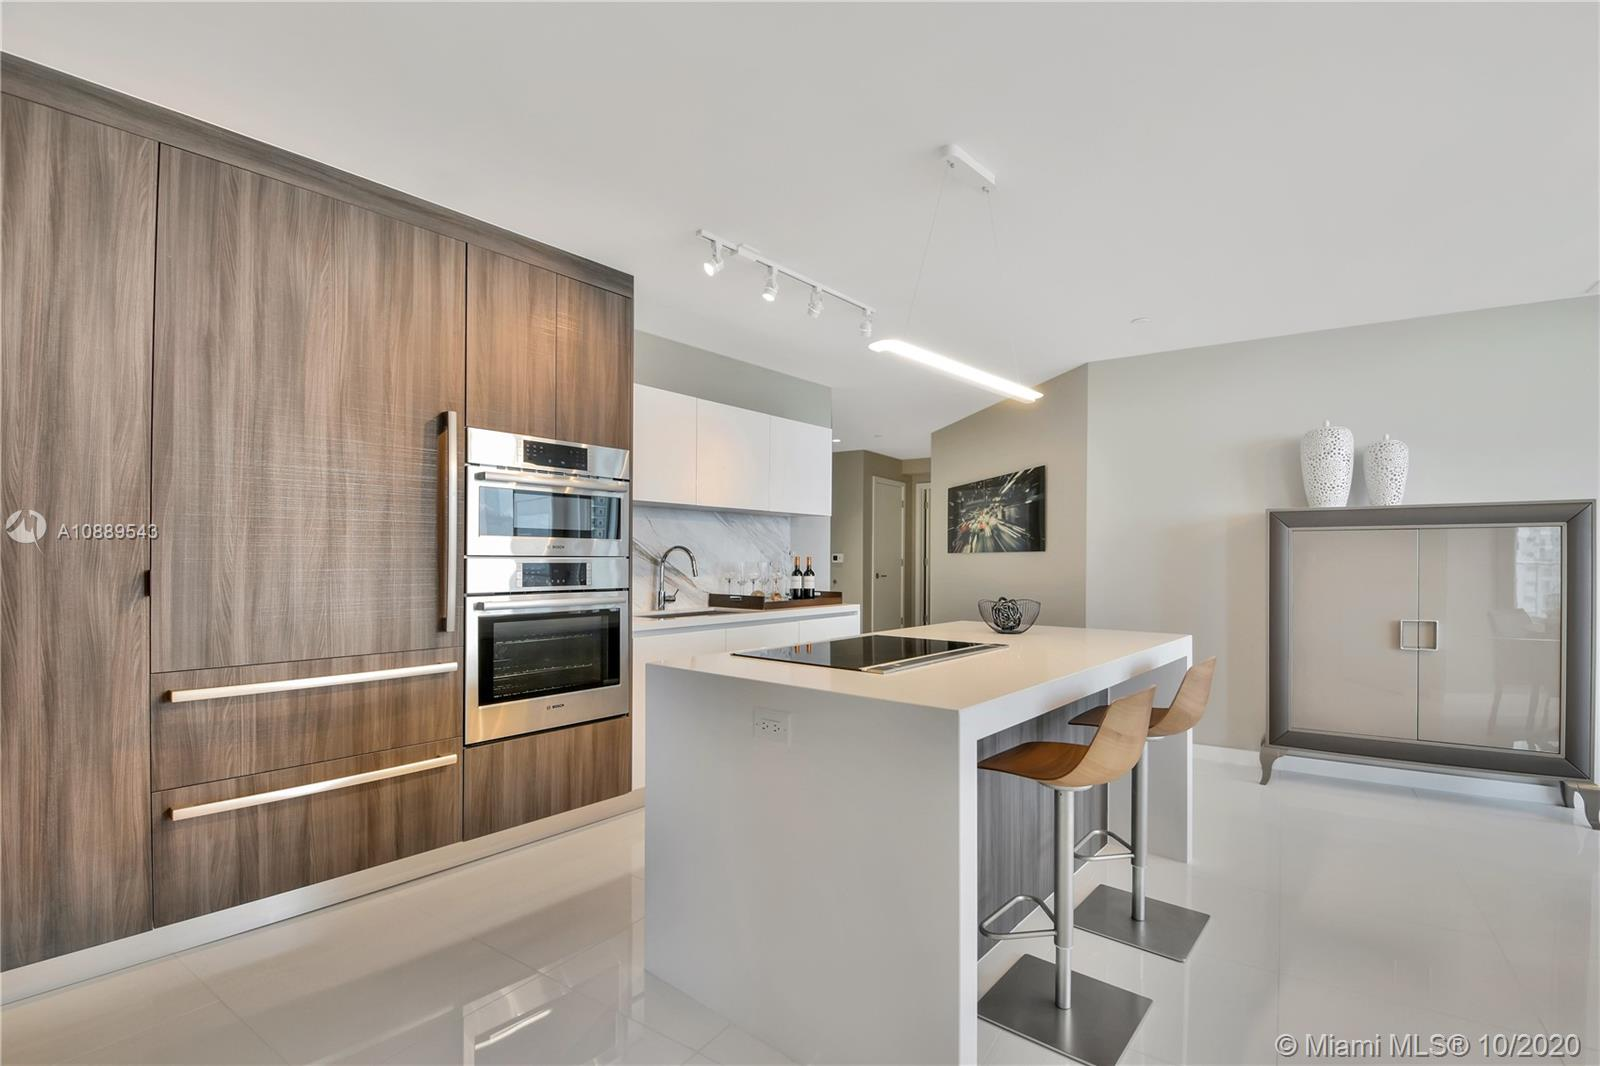 Photo of 851 NE 1st Ave #4409 listing for Sale